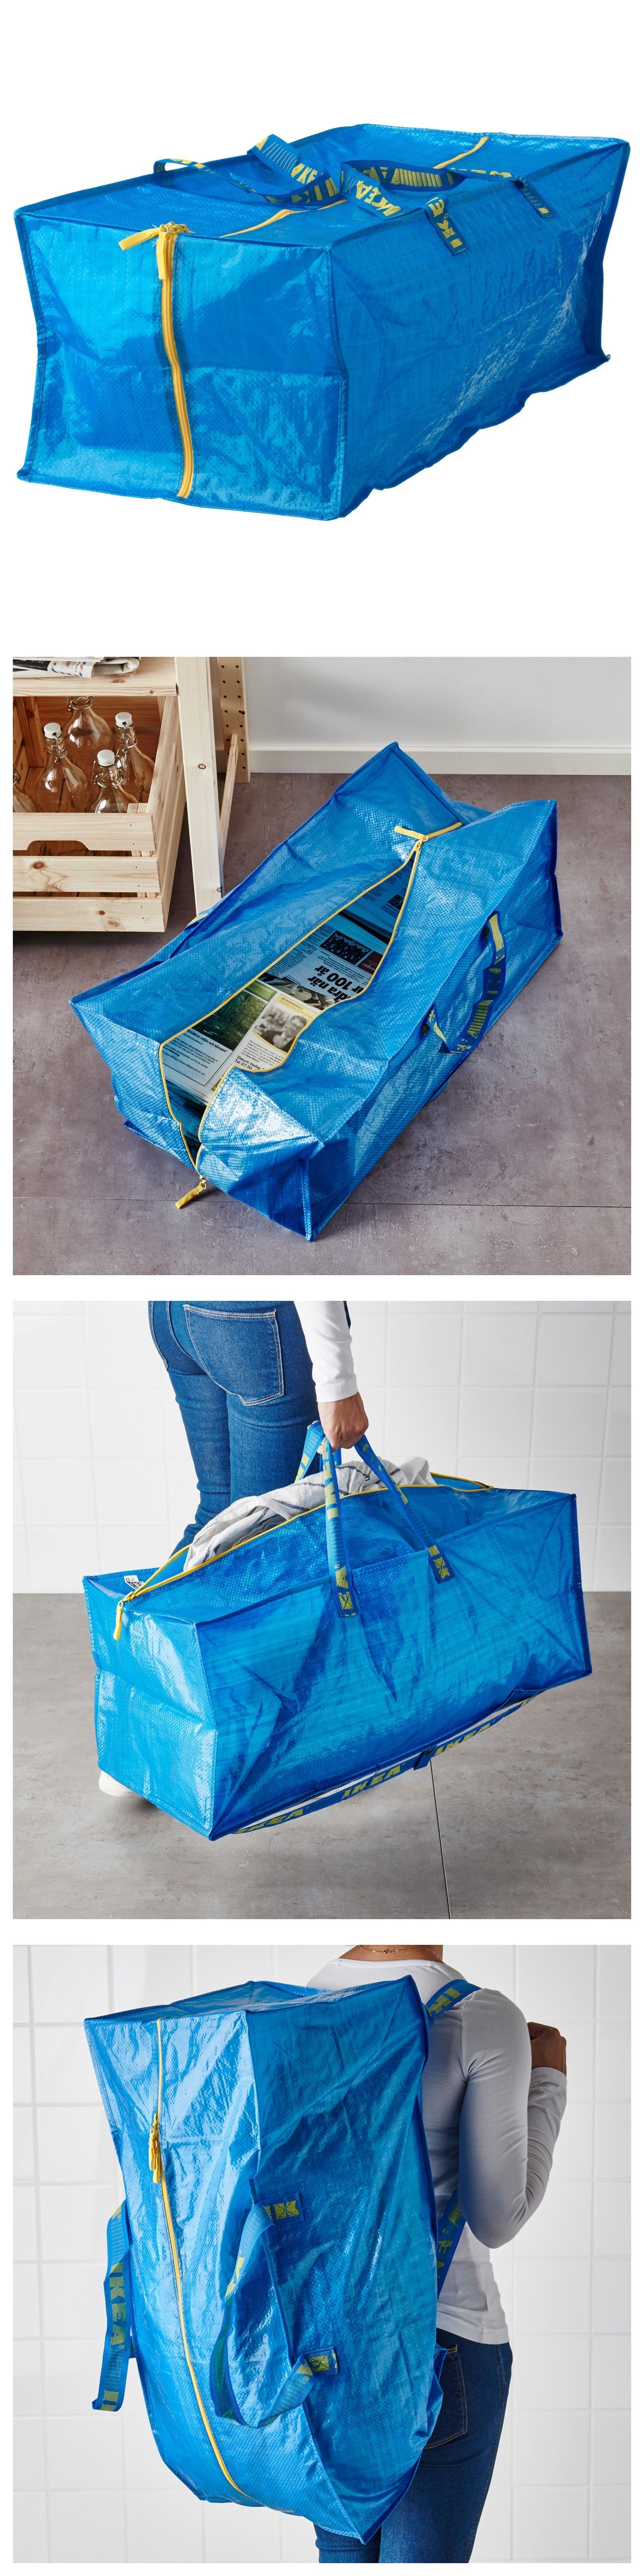 Reusable Eco Bags 169302: Ikea Frakta Storage Bag,Extra Large   Blue